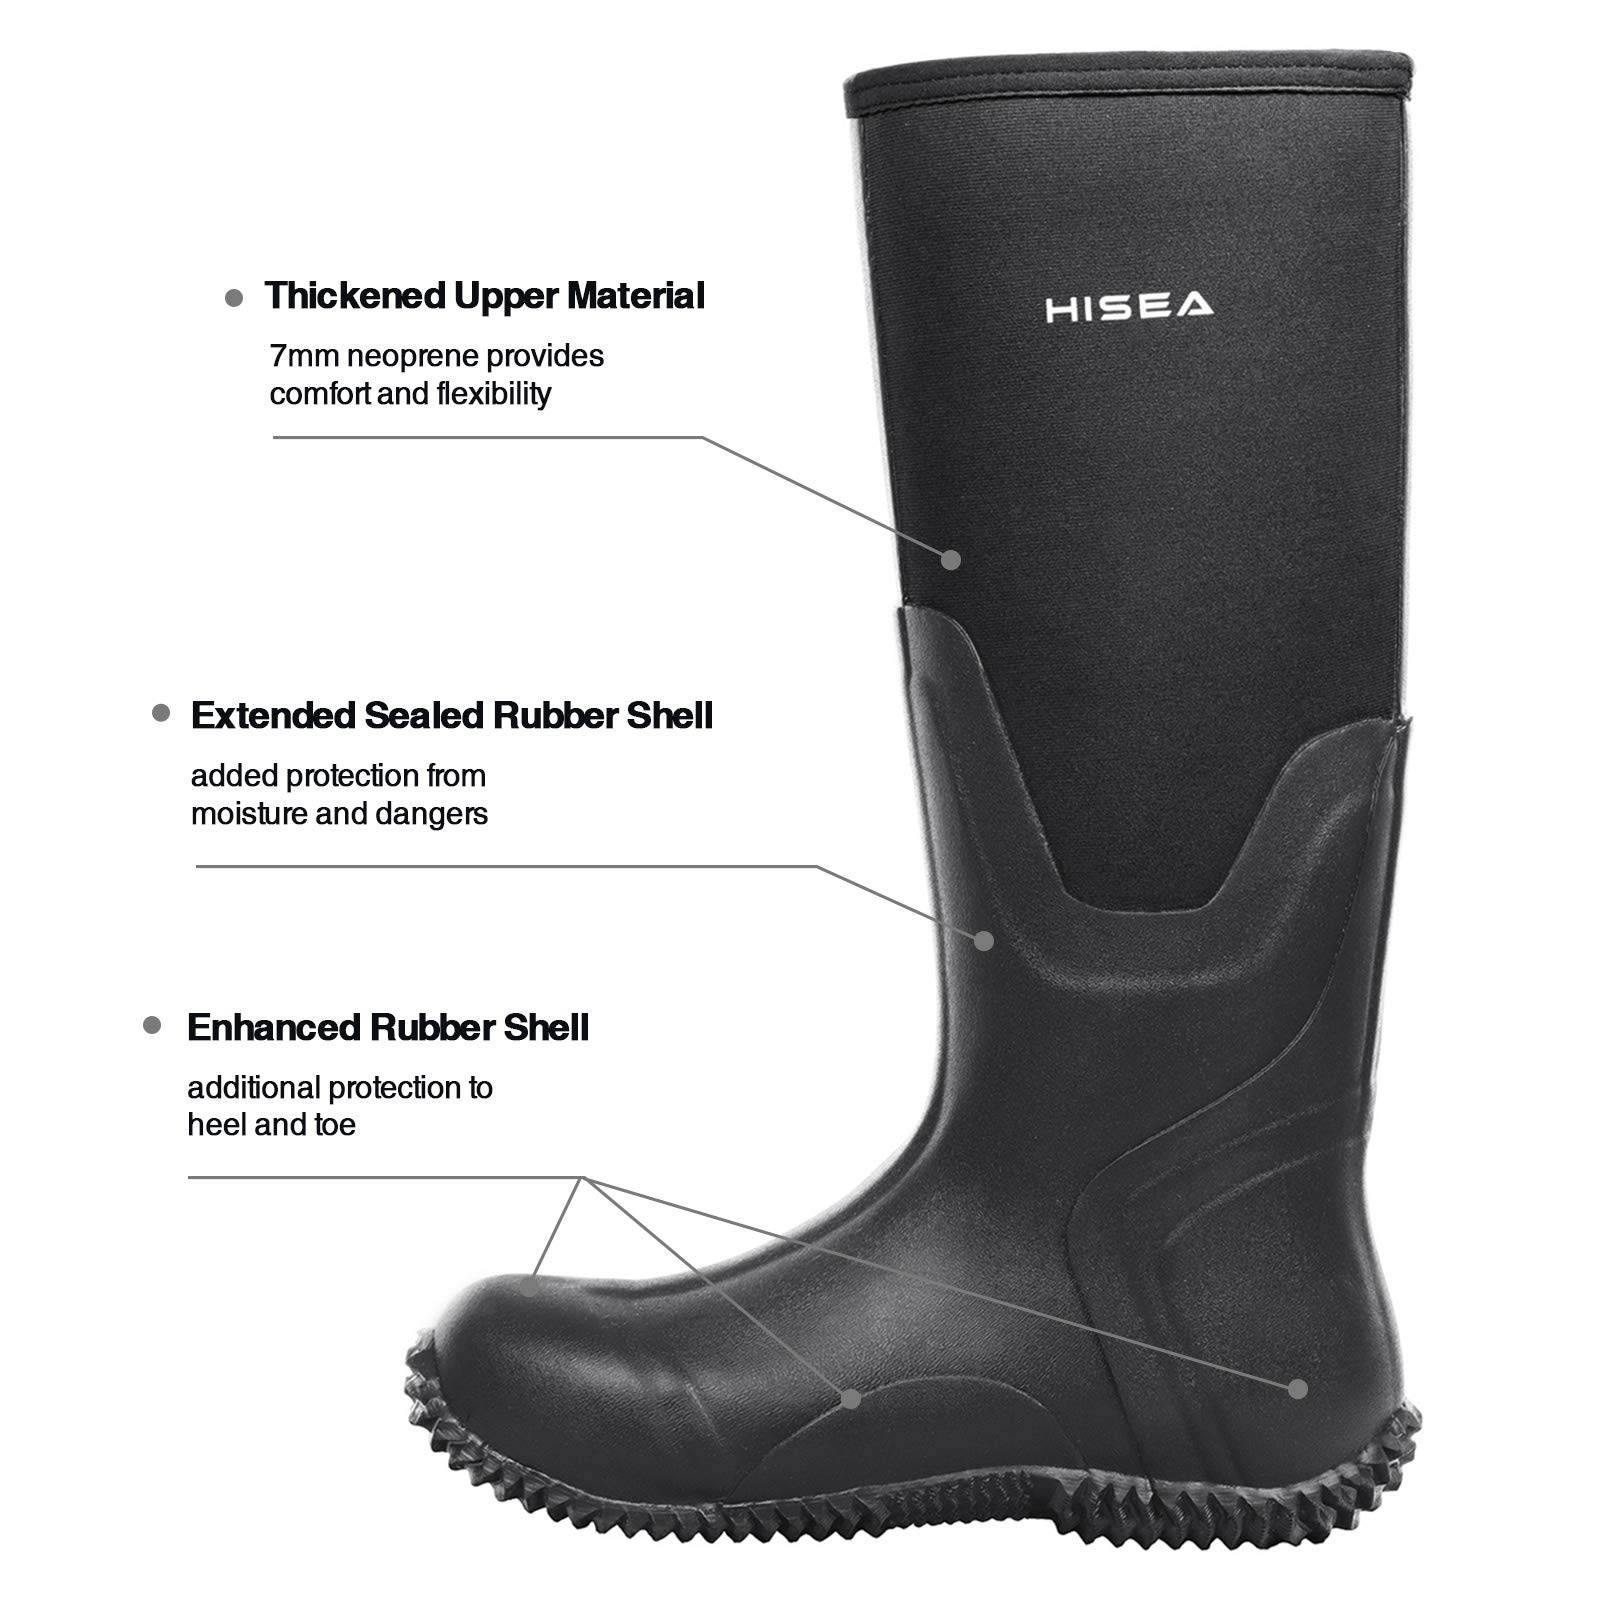 Hisea Mens Insulated Rubber Neoprene Boots Waterproof Durable Insulated Outdoor Winter Snow Rain Boots Hunting Arctic Boot Black Size 7 by Hisea (Image #3)